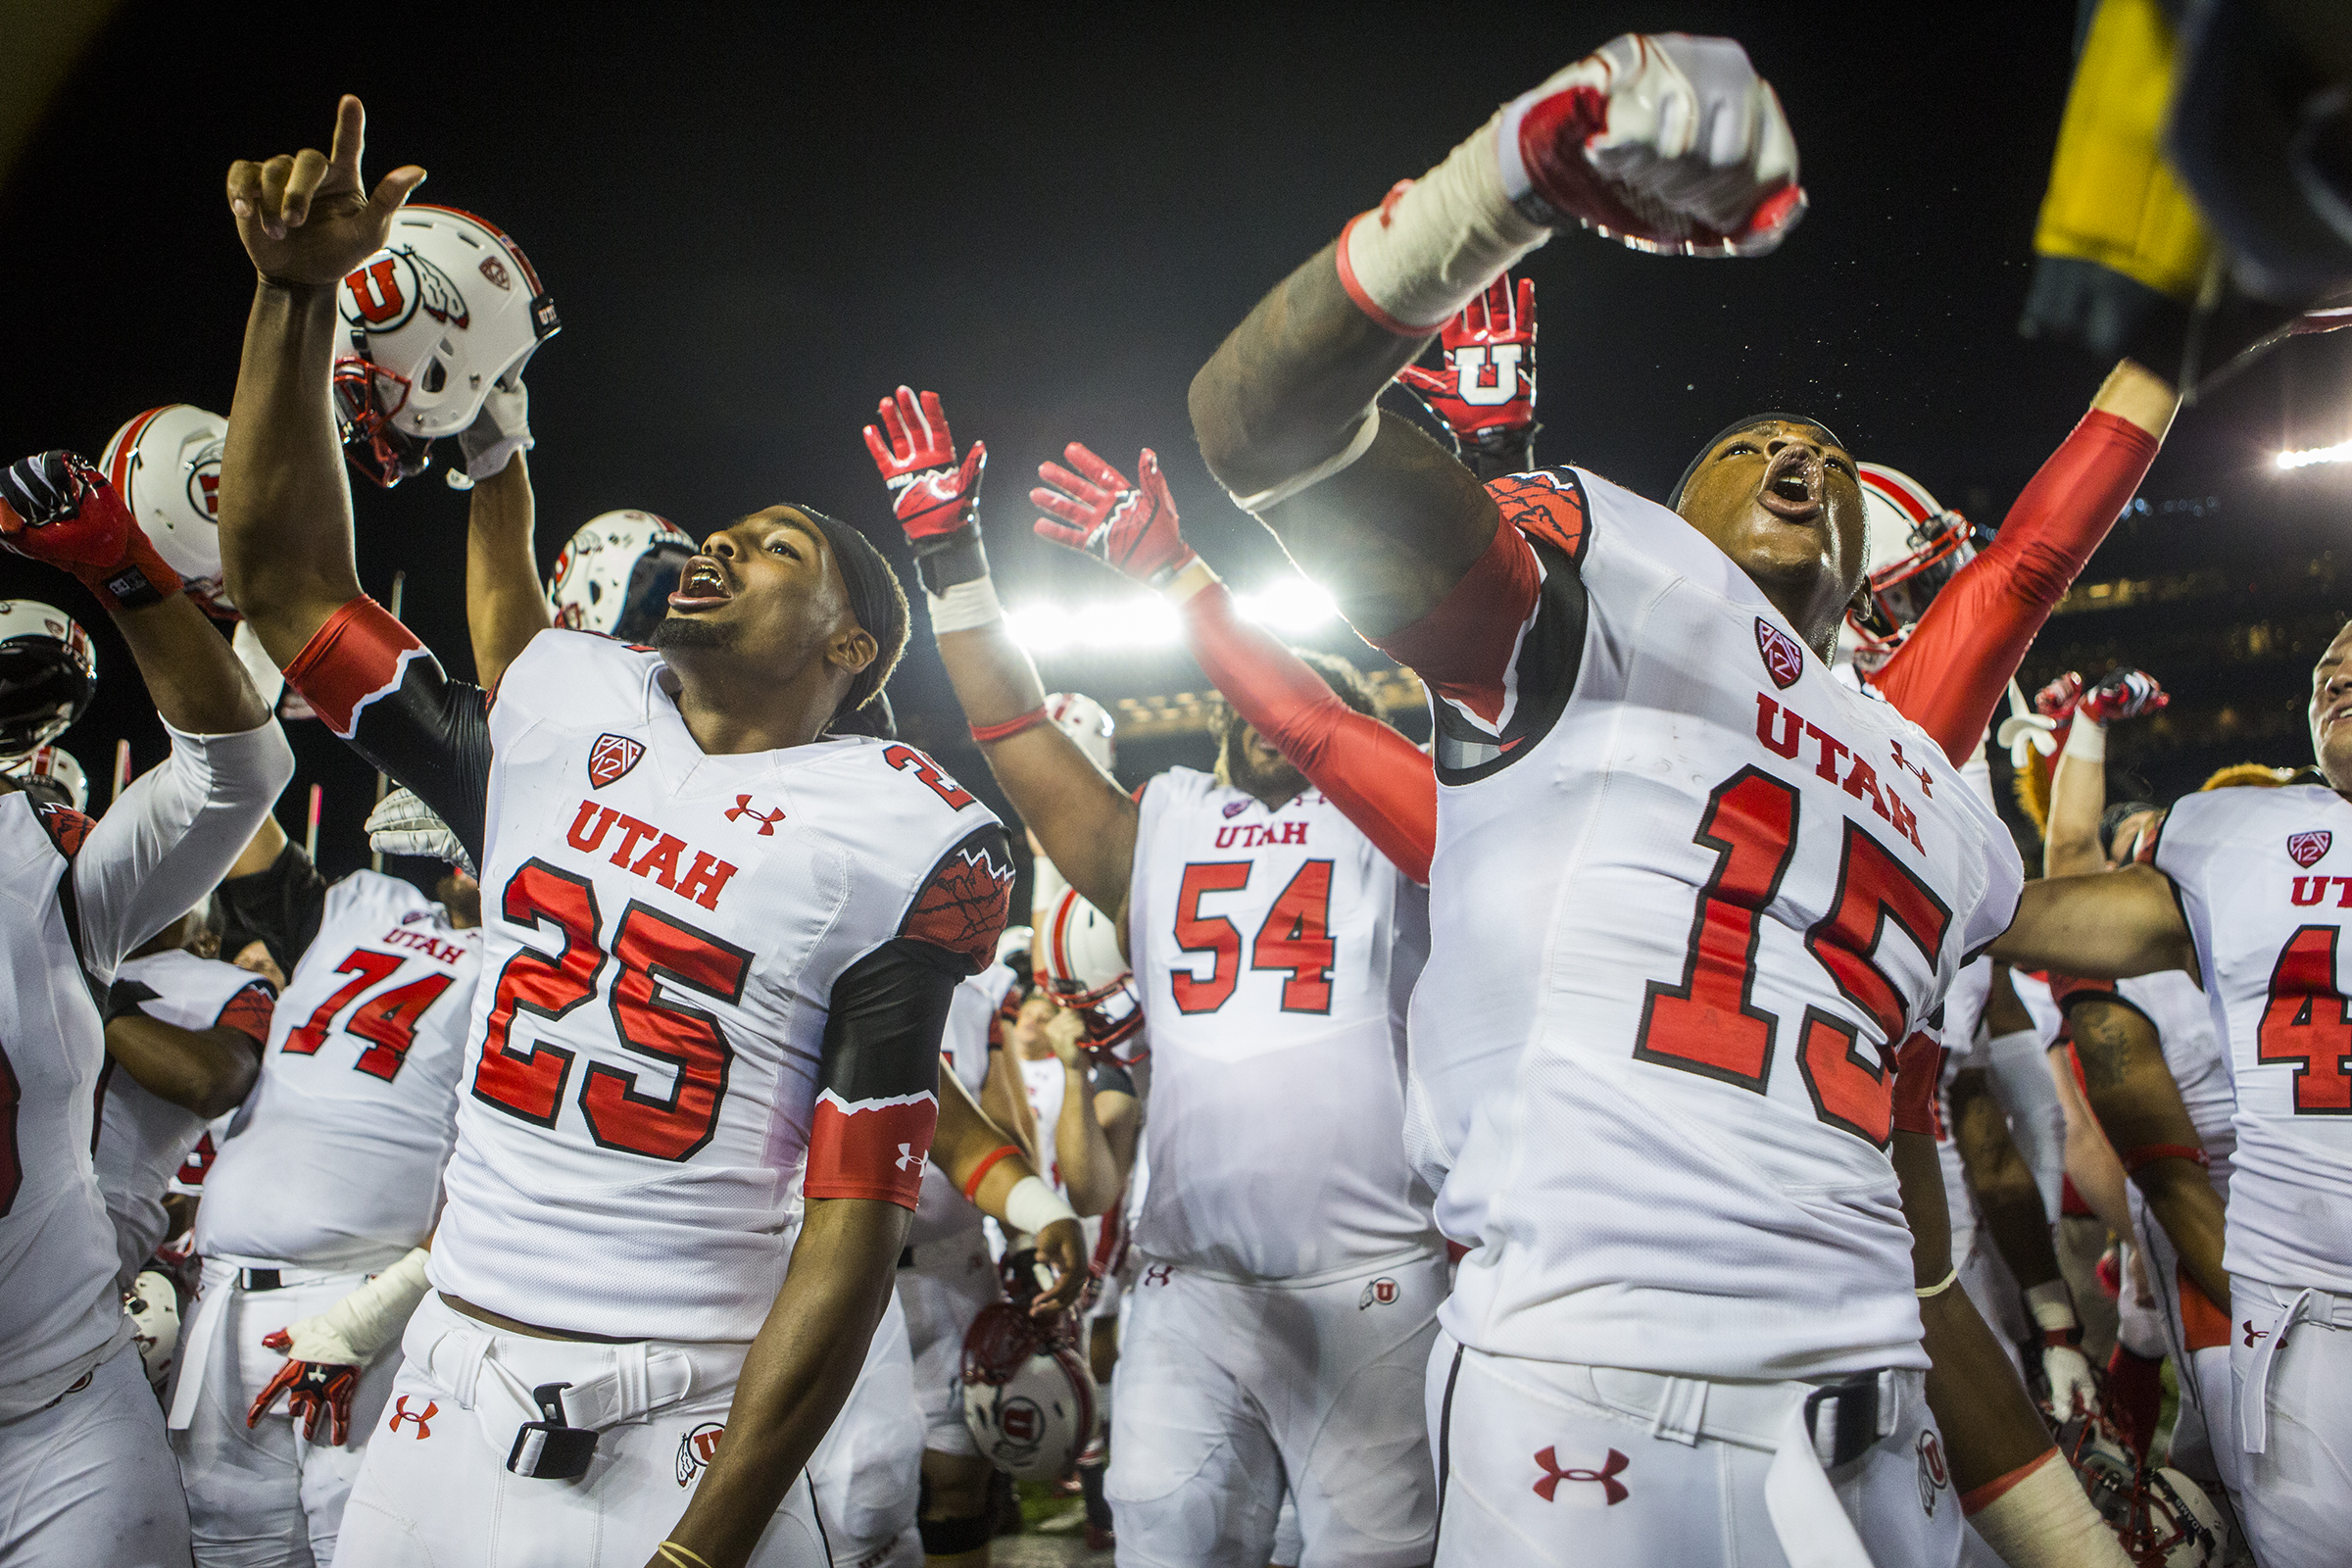 Members of the Utah football team celebrate their victory of 26-10 against Michigan after a 2 hour and 24 minute rain delay in the Big House on September 20, 2014.